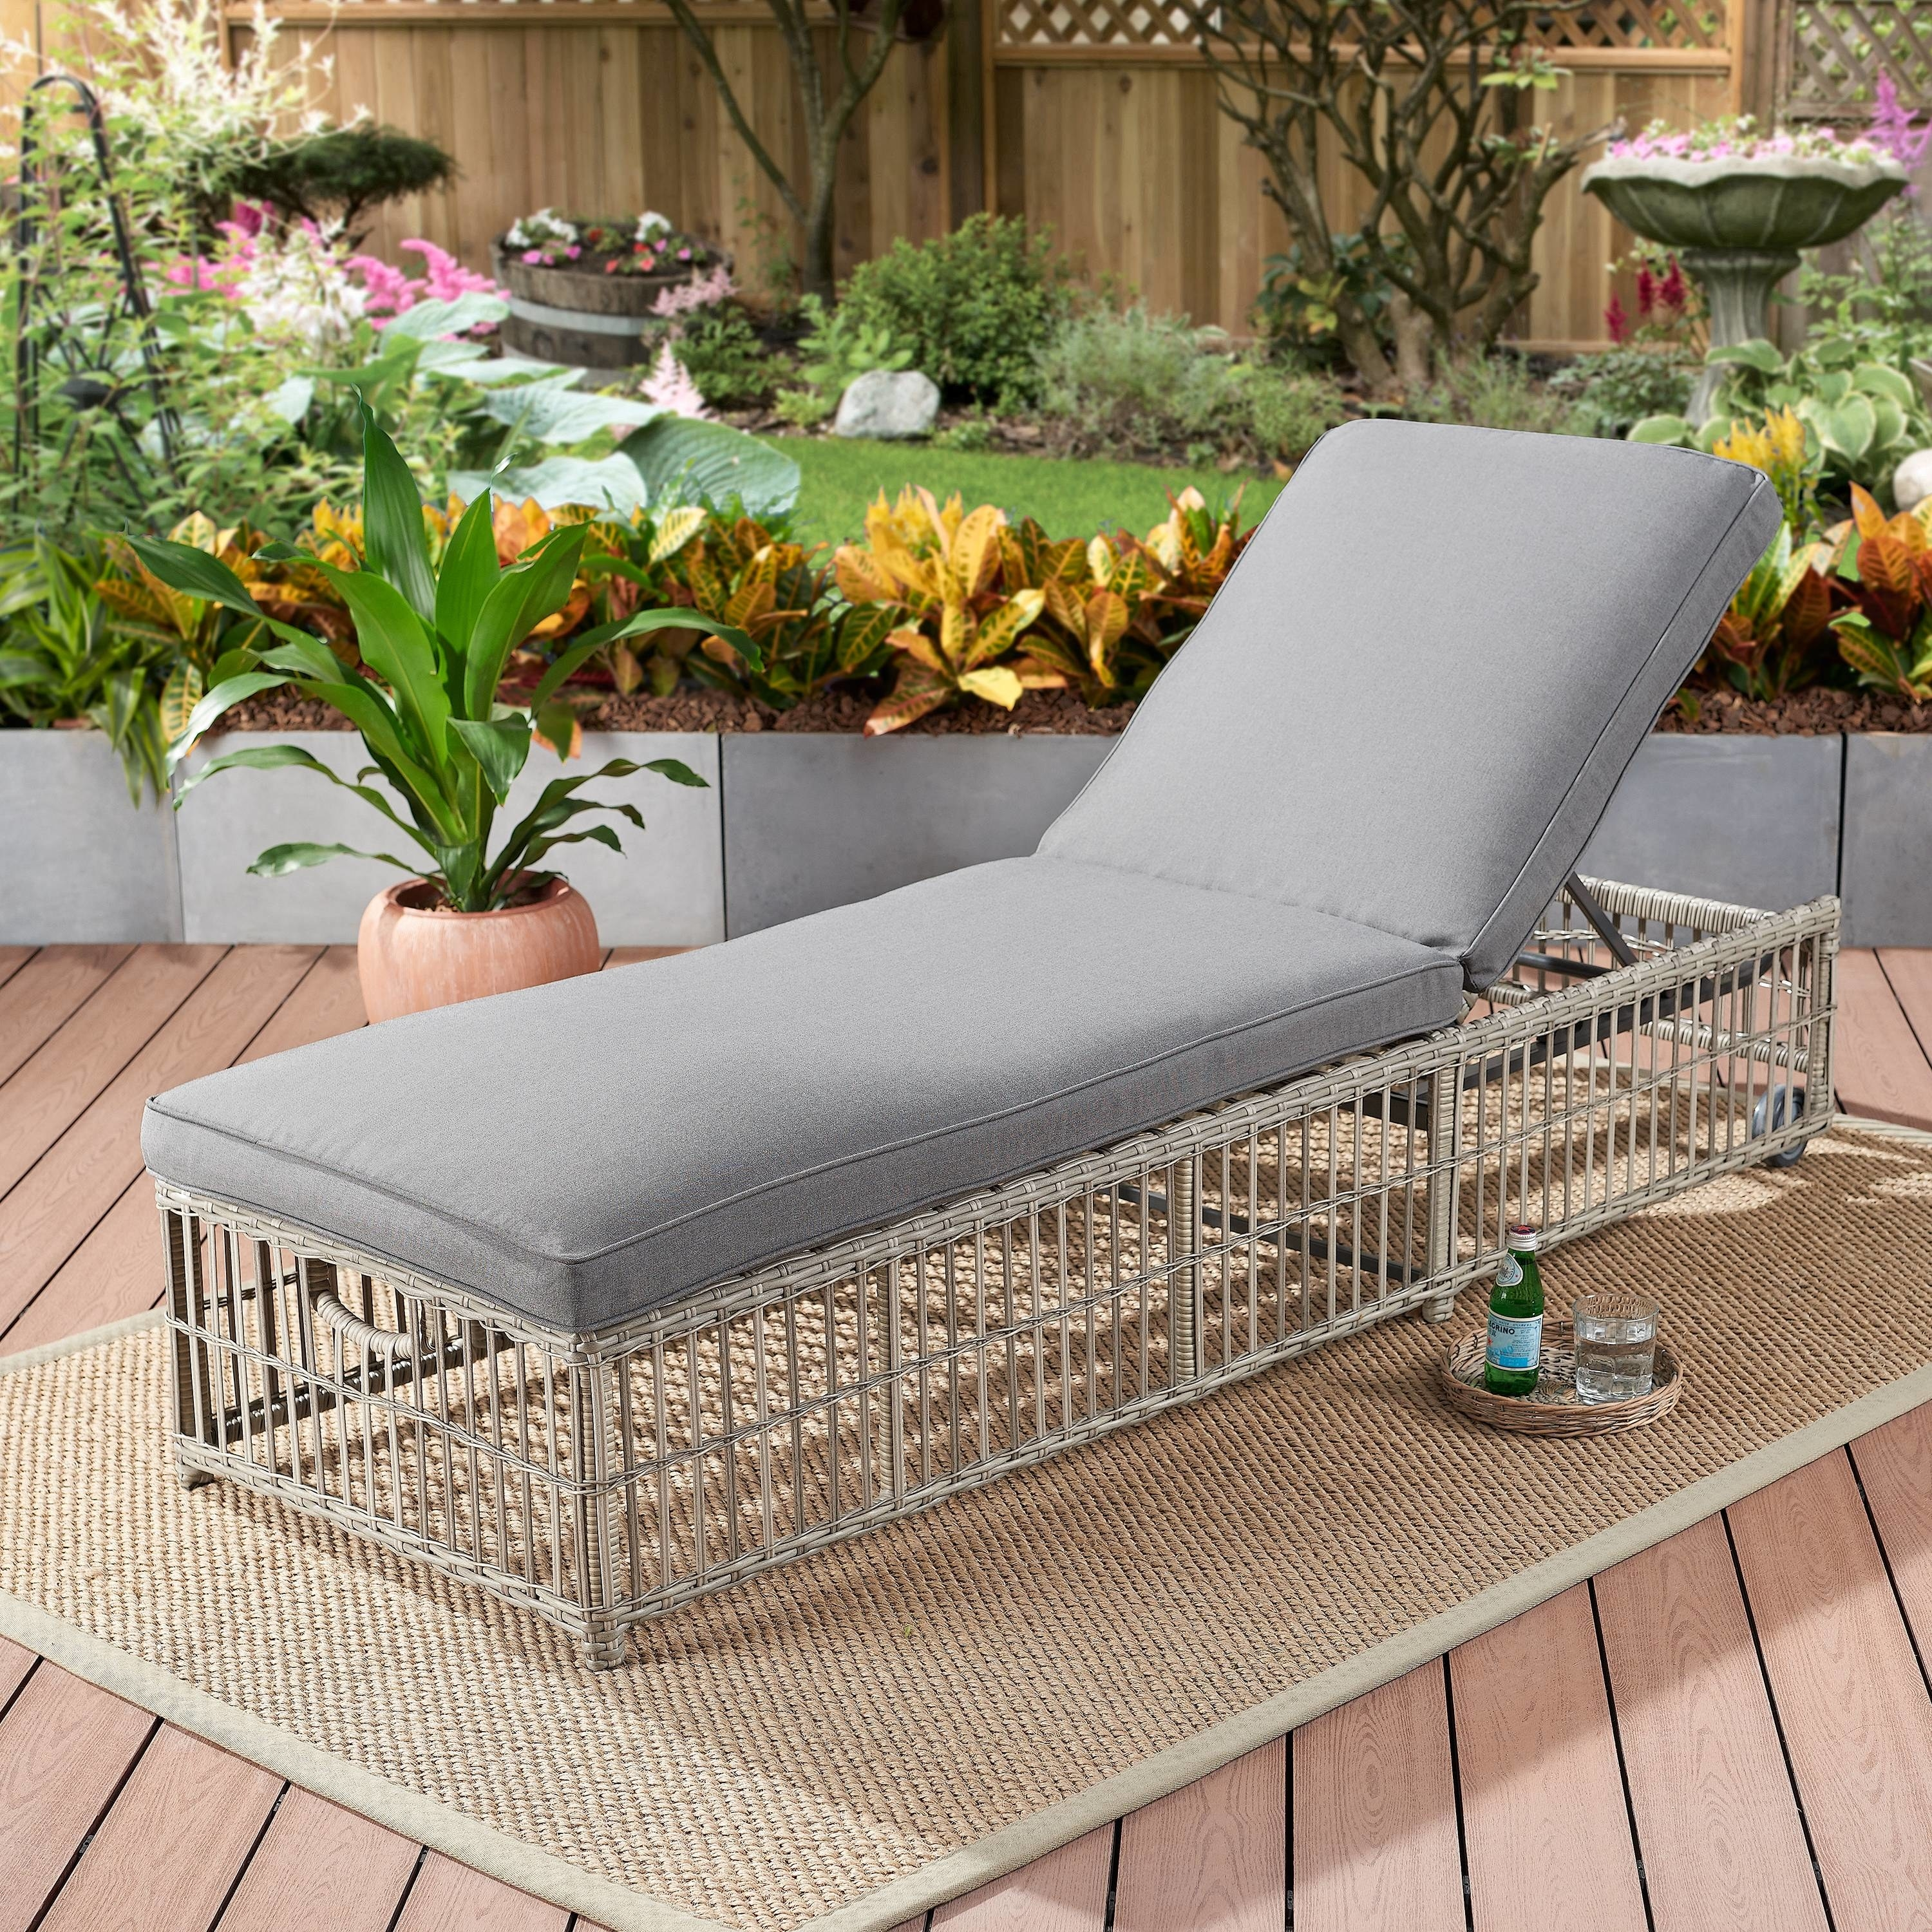 A gray cushioned lounge chair on wicker platform